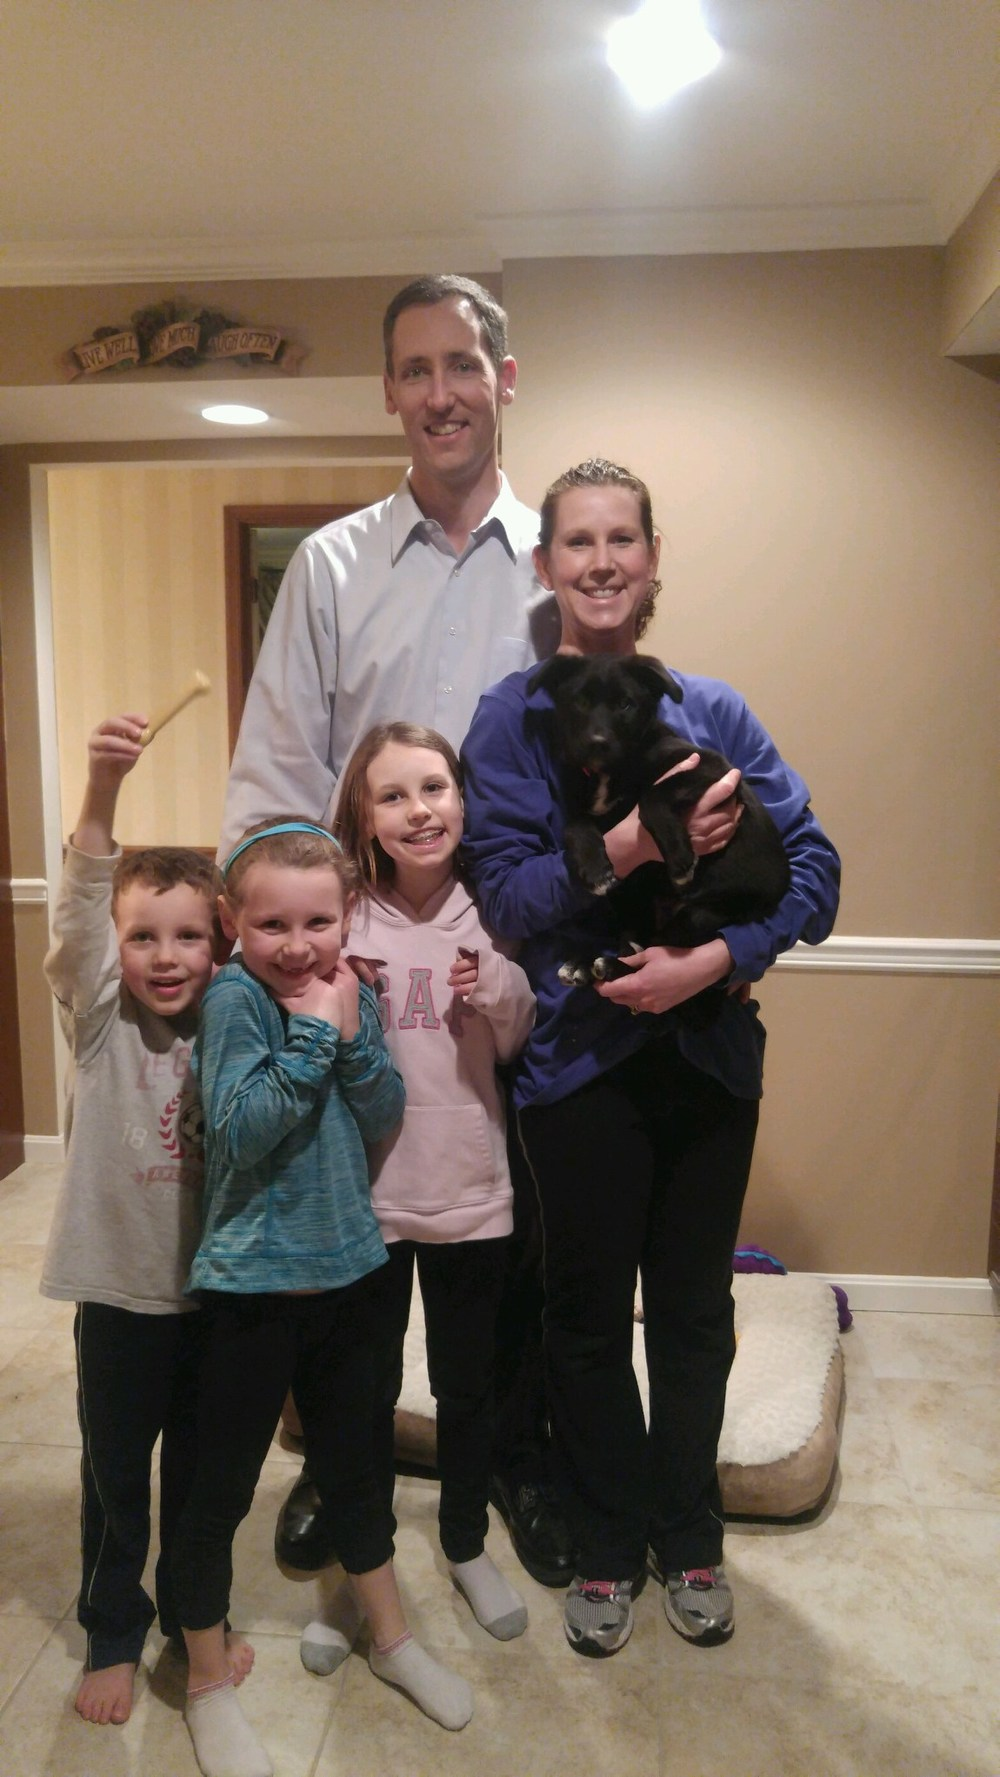 Crusoe hit the lotto of fun with Hoffmann family!